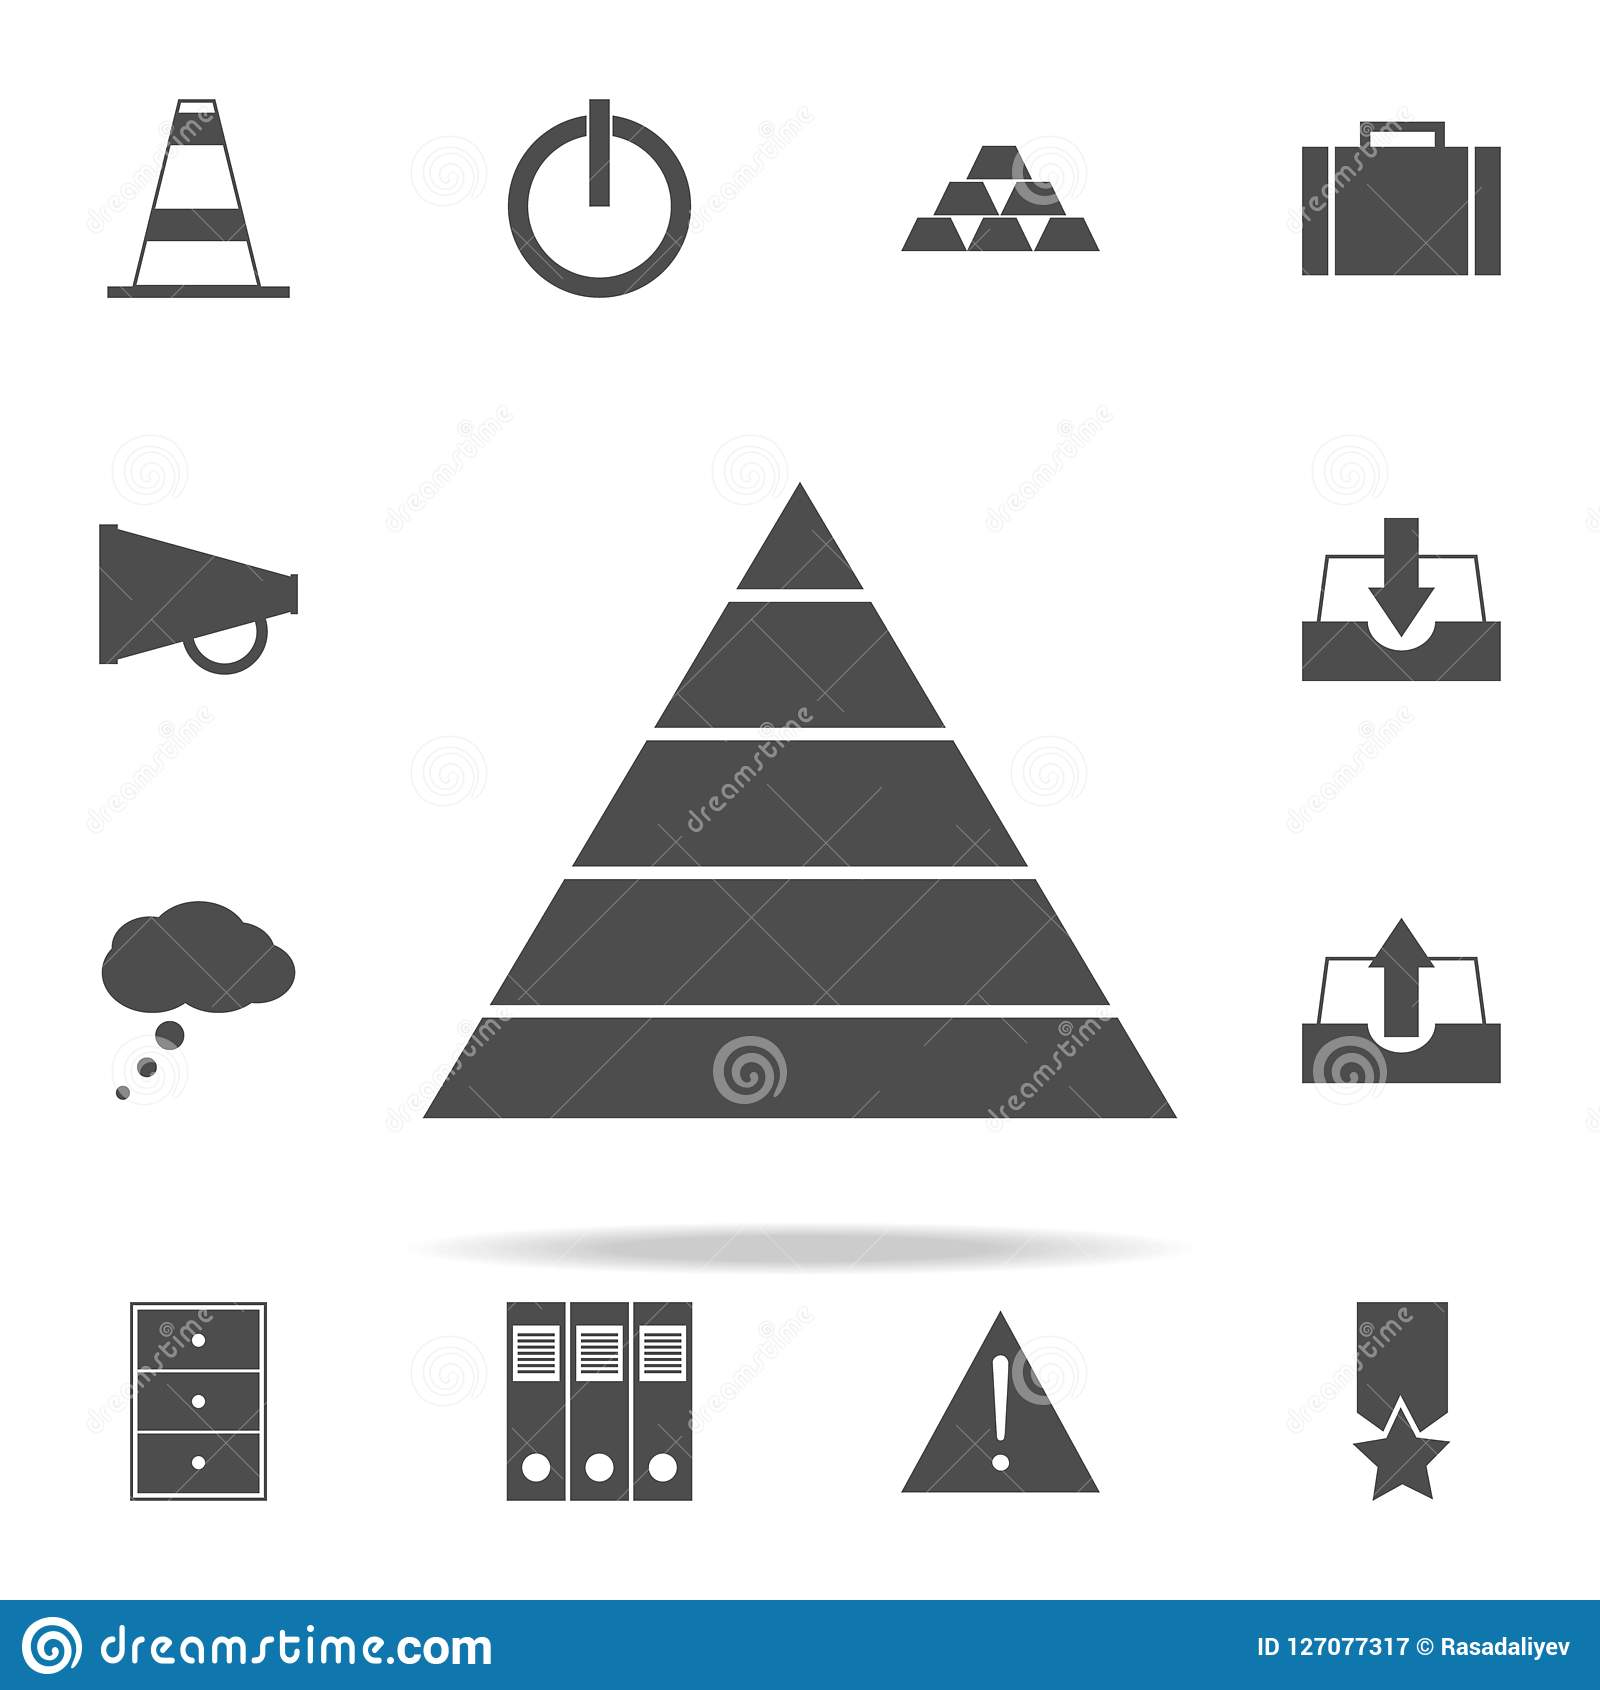 hight resolution of pyramid diagram icon web icons universal set for web and mobile